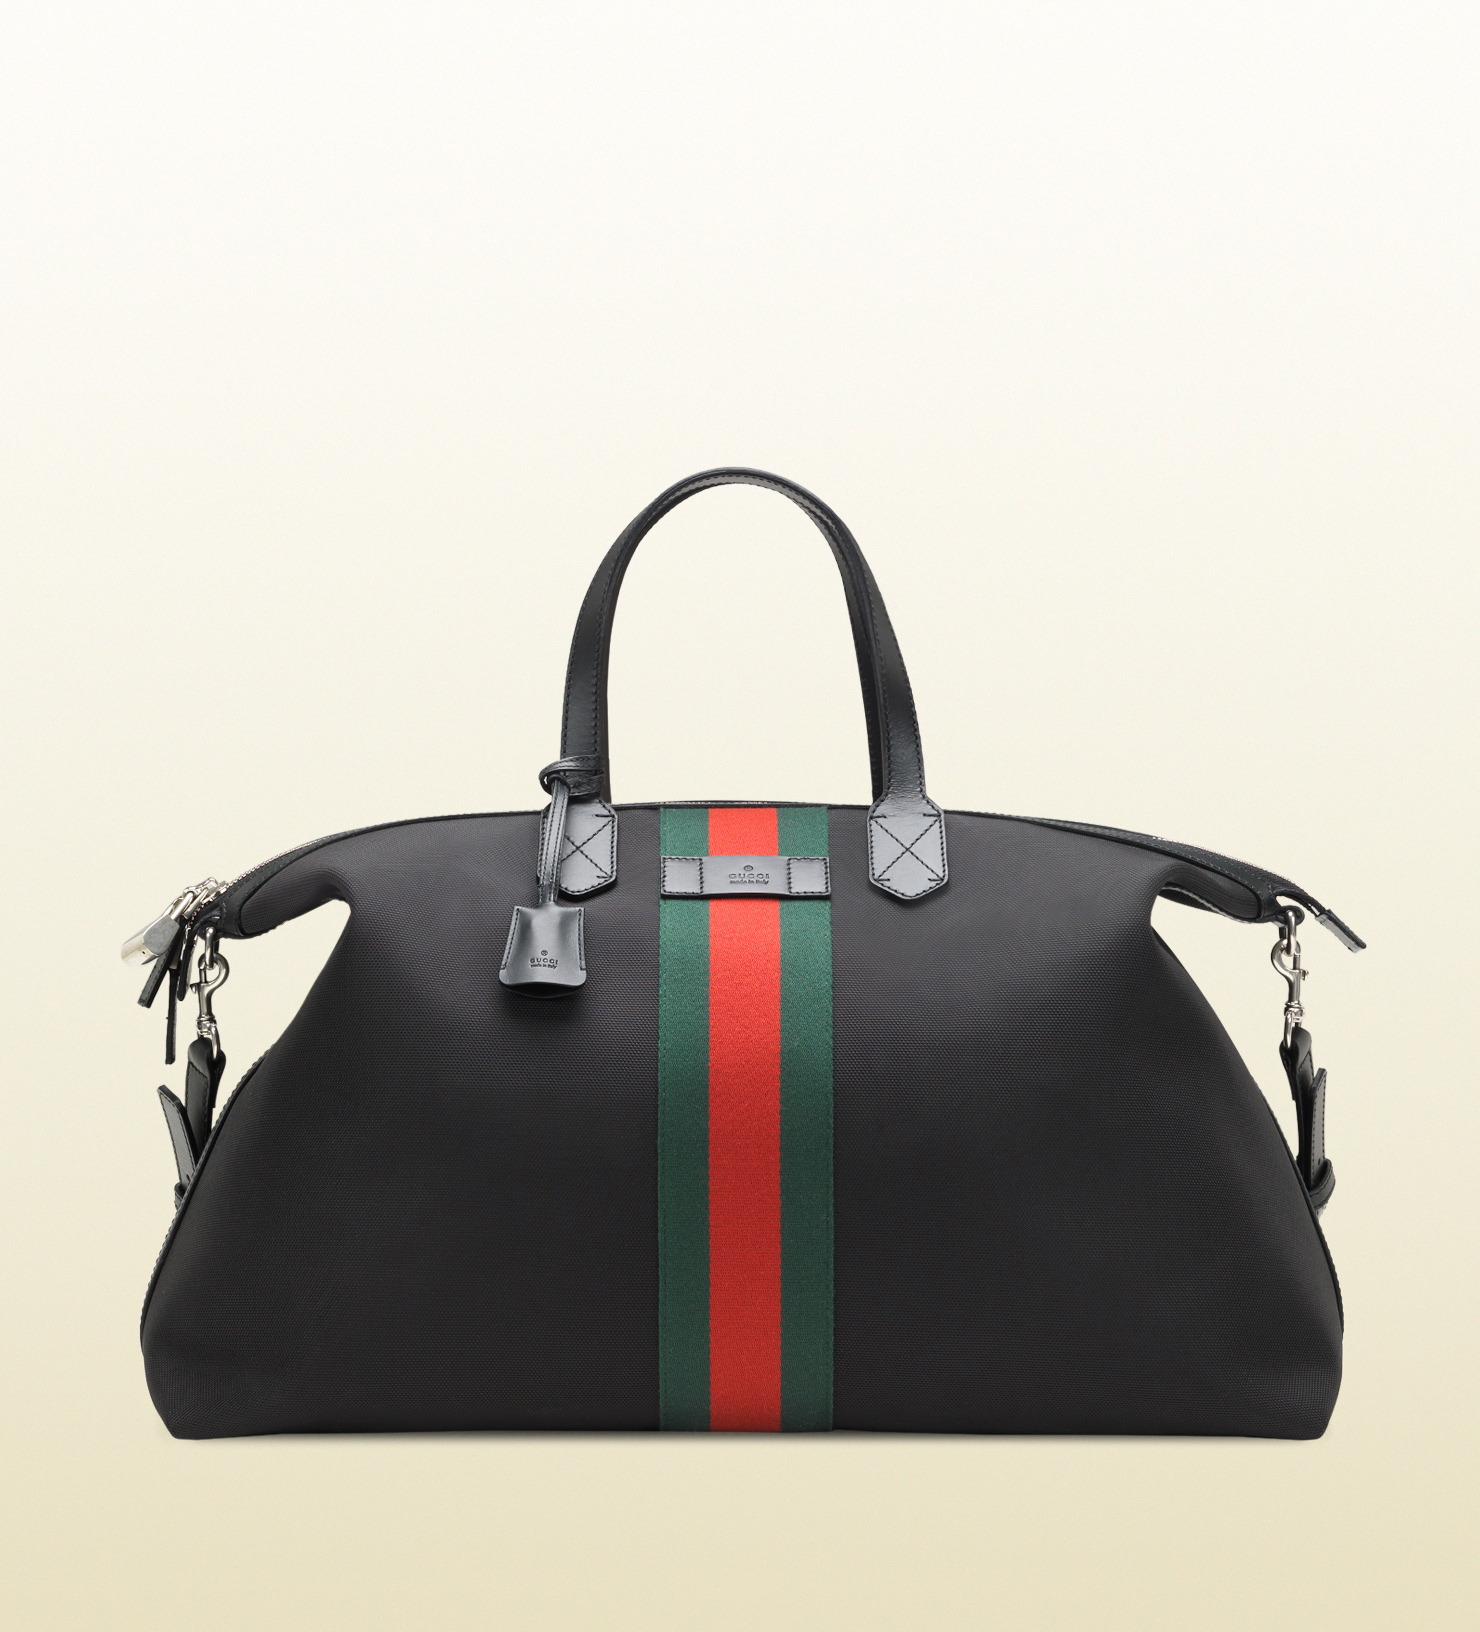 Gucci Techno Canvas Duffle Carry On Bag In Black For Men